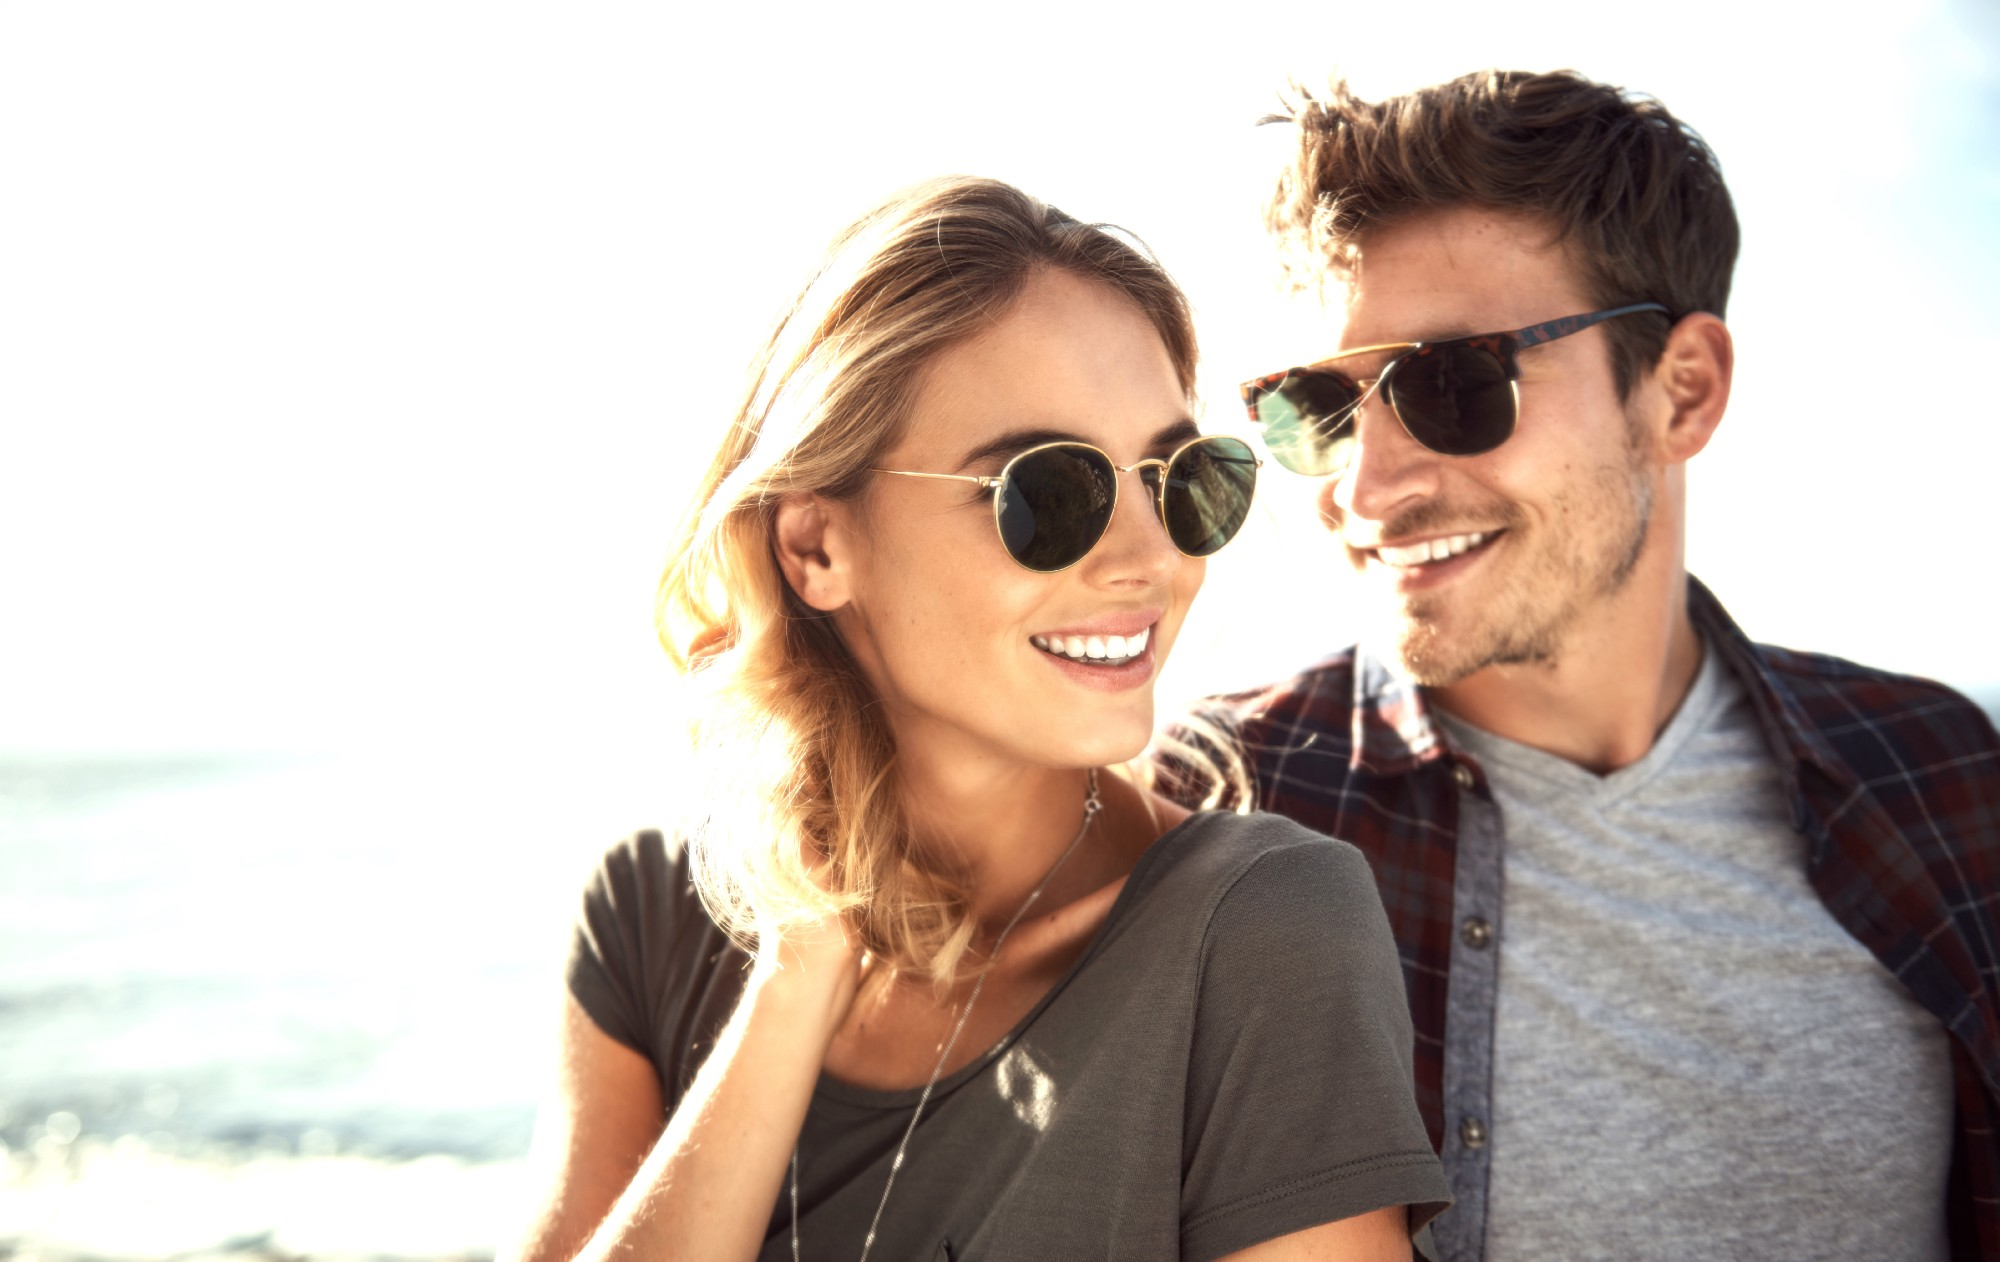 A man and woman smile while wearing sunglasses.